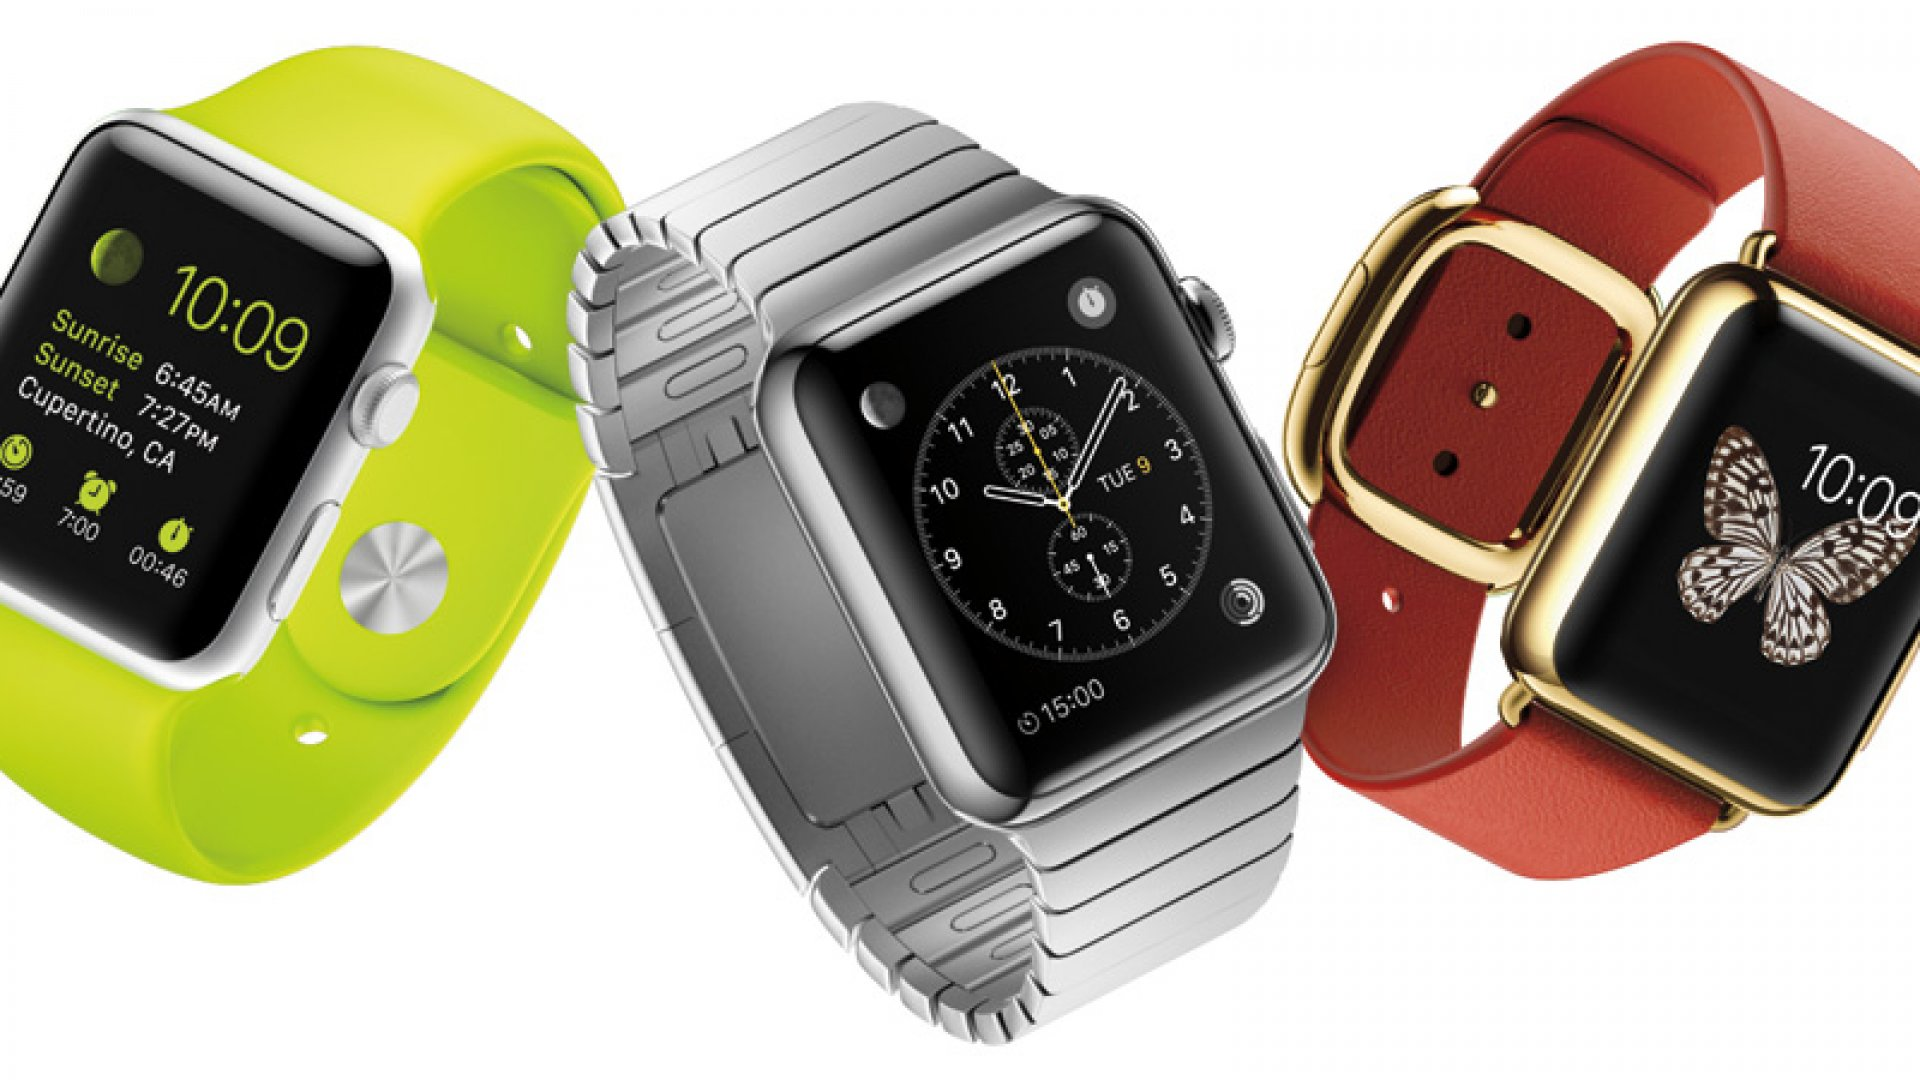 The new Apple Watch comes in three distinct design collections, which include an 18-karat gold version, a sporty style with a fluoroelastomer band in five different colors, and more.